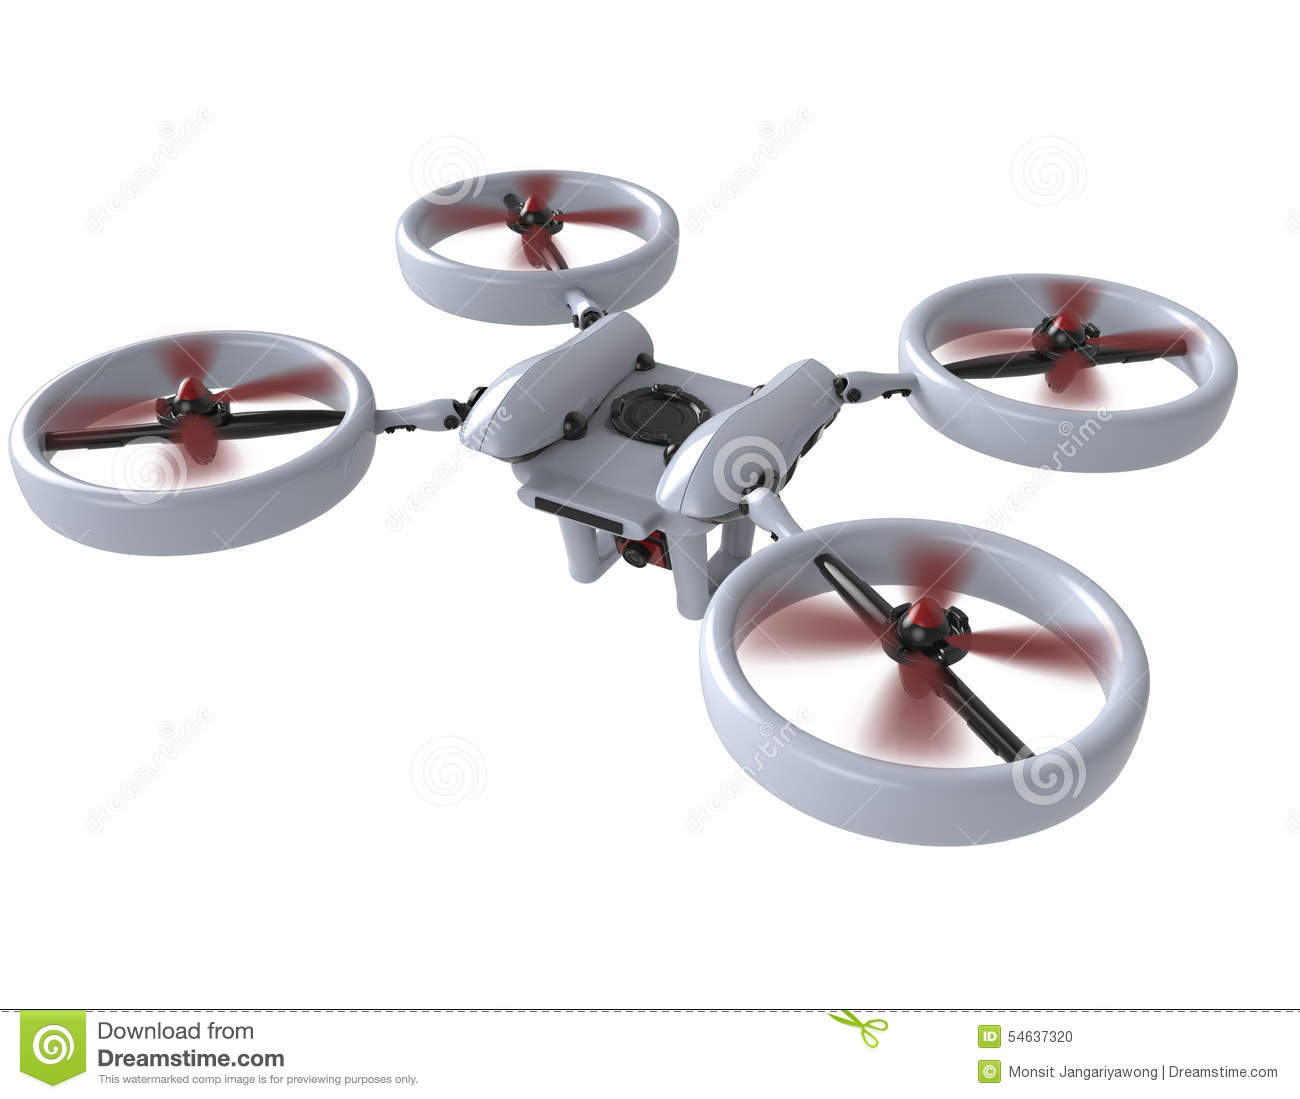 spy drone helicopter with Stock Illustration Flying Drone Isolated White Background Clipping Path D Render Concept Design Remote Air Image54637320 on High School Drone Designers Head D C Weekend together with Game Of Drones The Australian Federal Police Wants To Use Uavs For Domestic Surveillance furthermore Product product id 1568 also Stock Photo Isolated Spy Drone Illustration Hovering Image31538970 likewise Stock Illustration Flying Drone Isolated White Background Clipping Path D Render Concept Design Remote Air Image54637320.